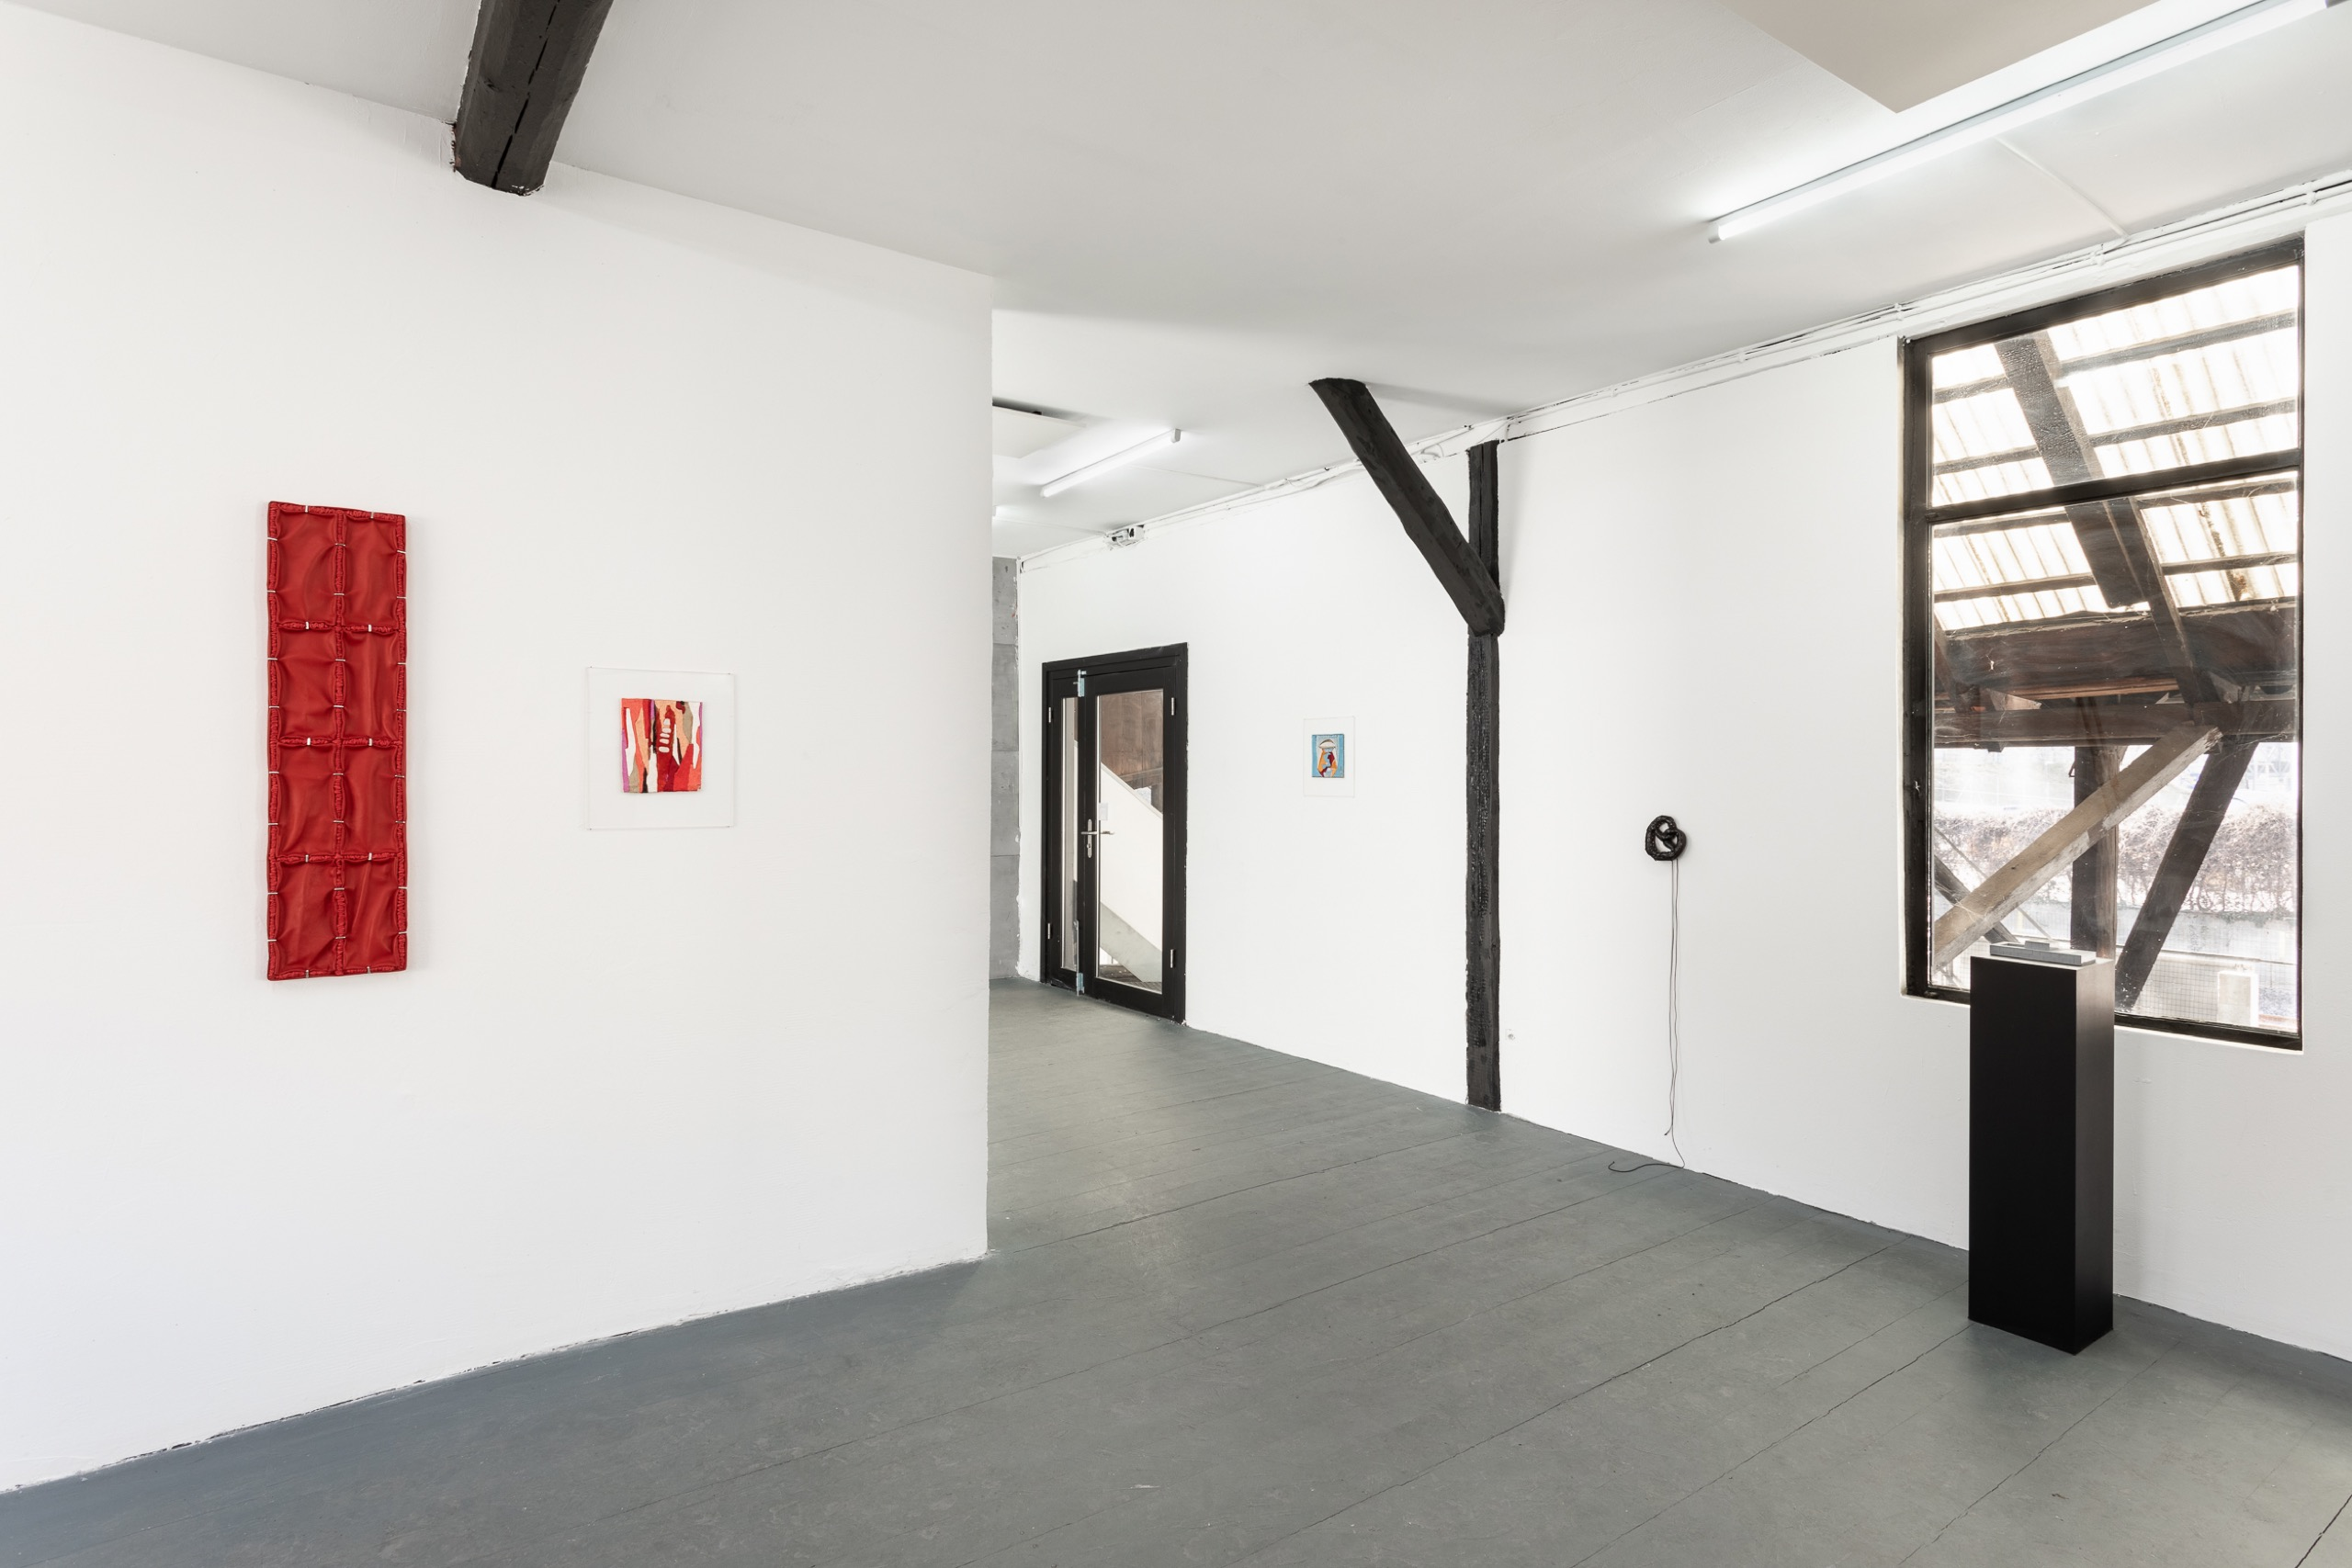 Have Sanity, Installation view, upstairs space